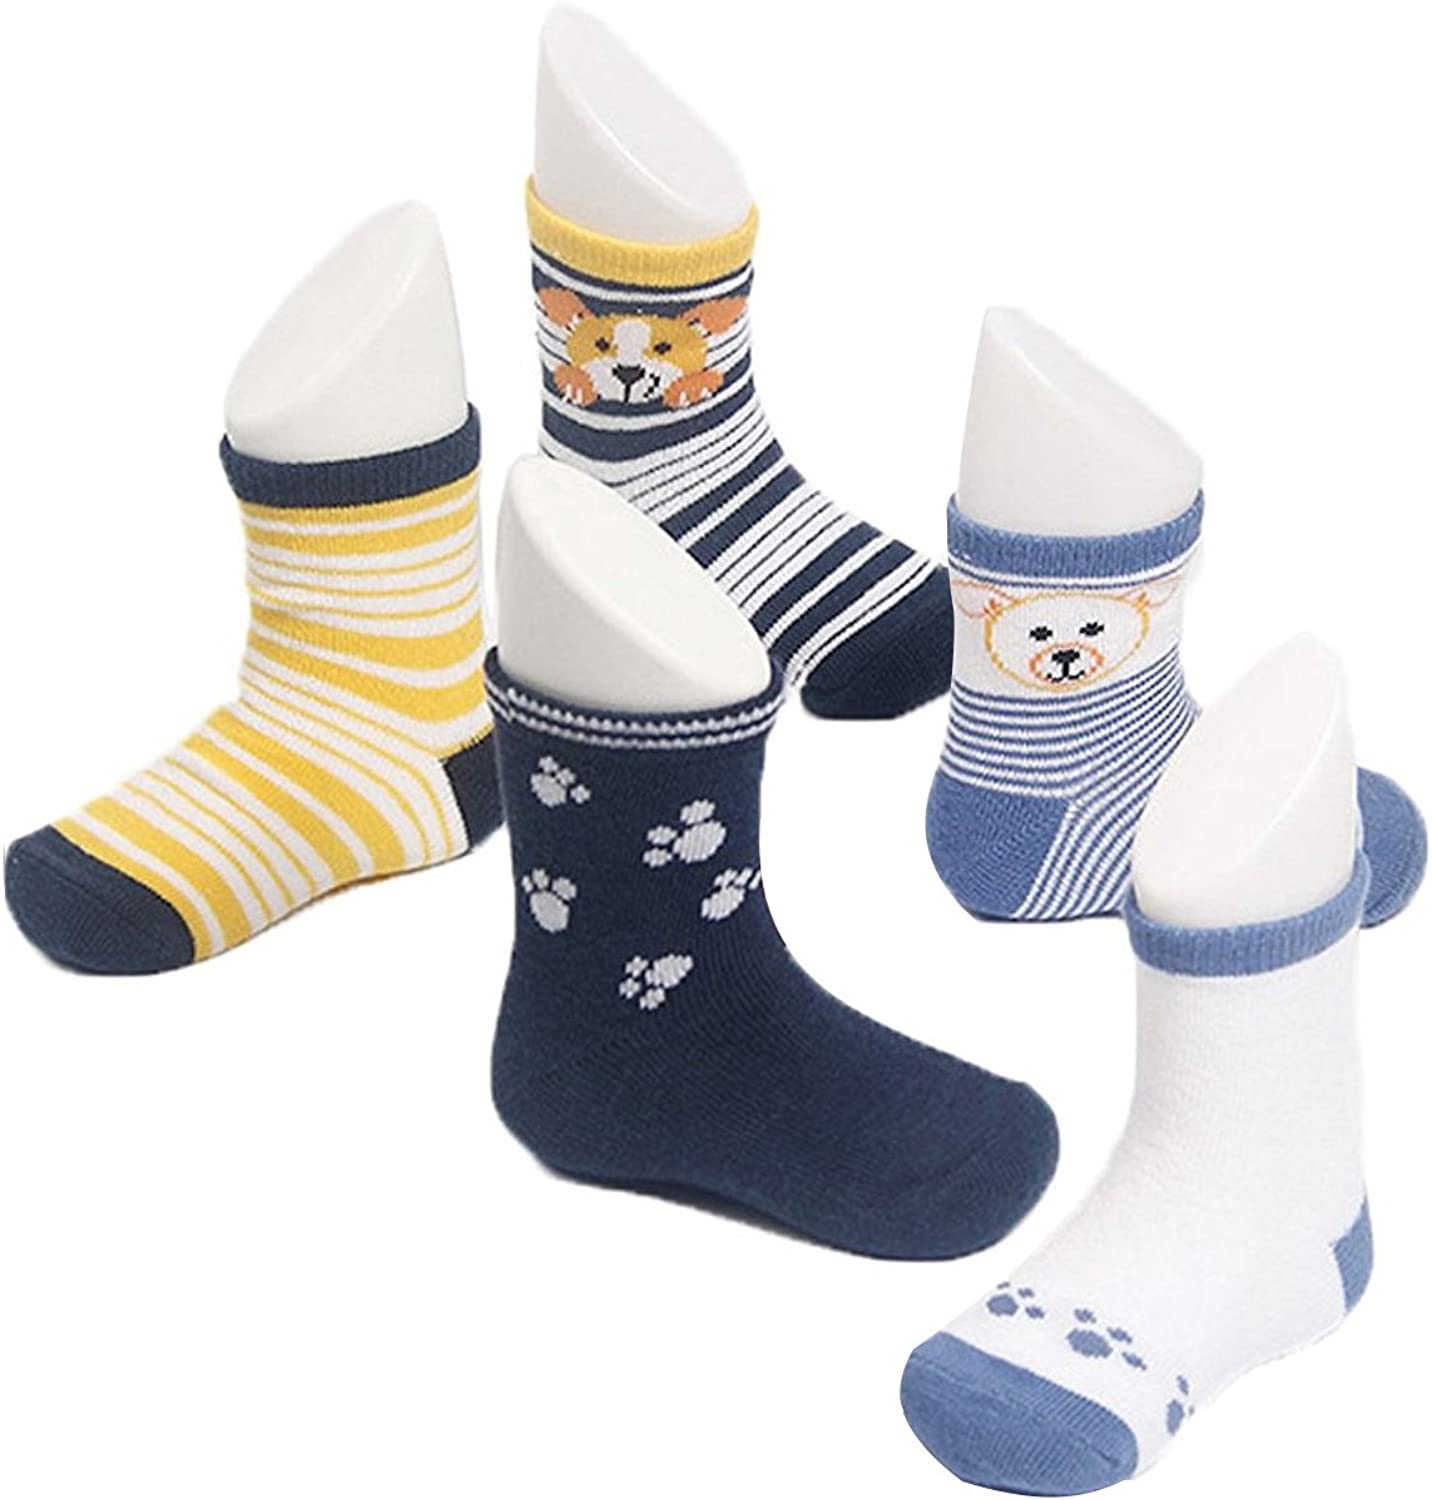 0-1 years old Century Star Unisex Child Kid Infant Baby Cotton Soft Cute Seamless 1-3t 5 Pairs Socks 5 Pack-Dog S